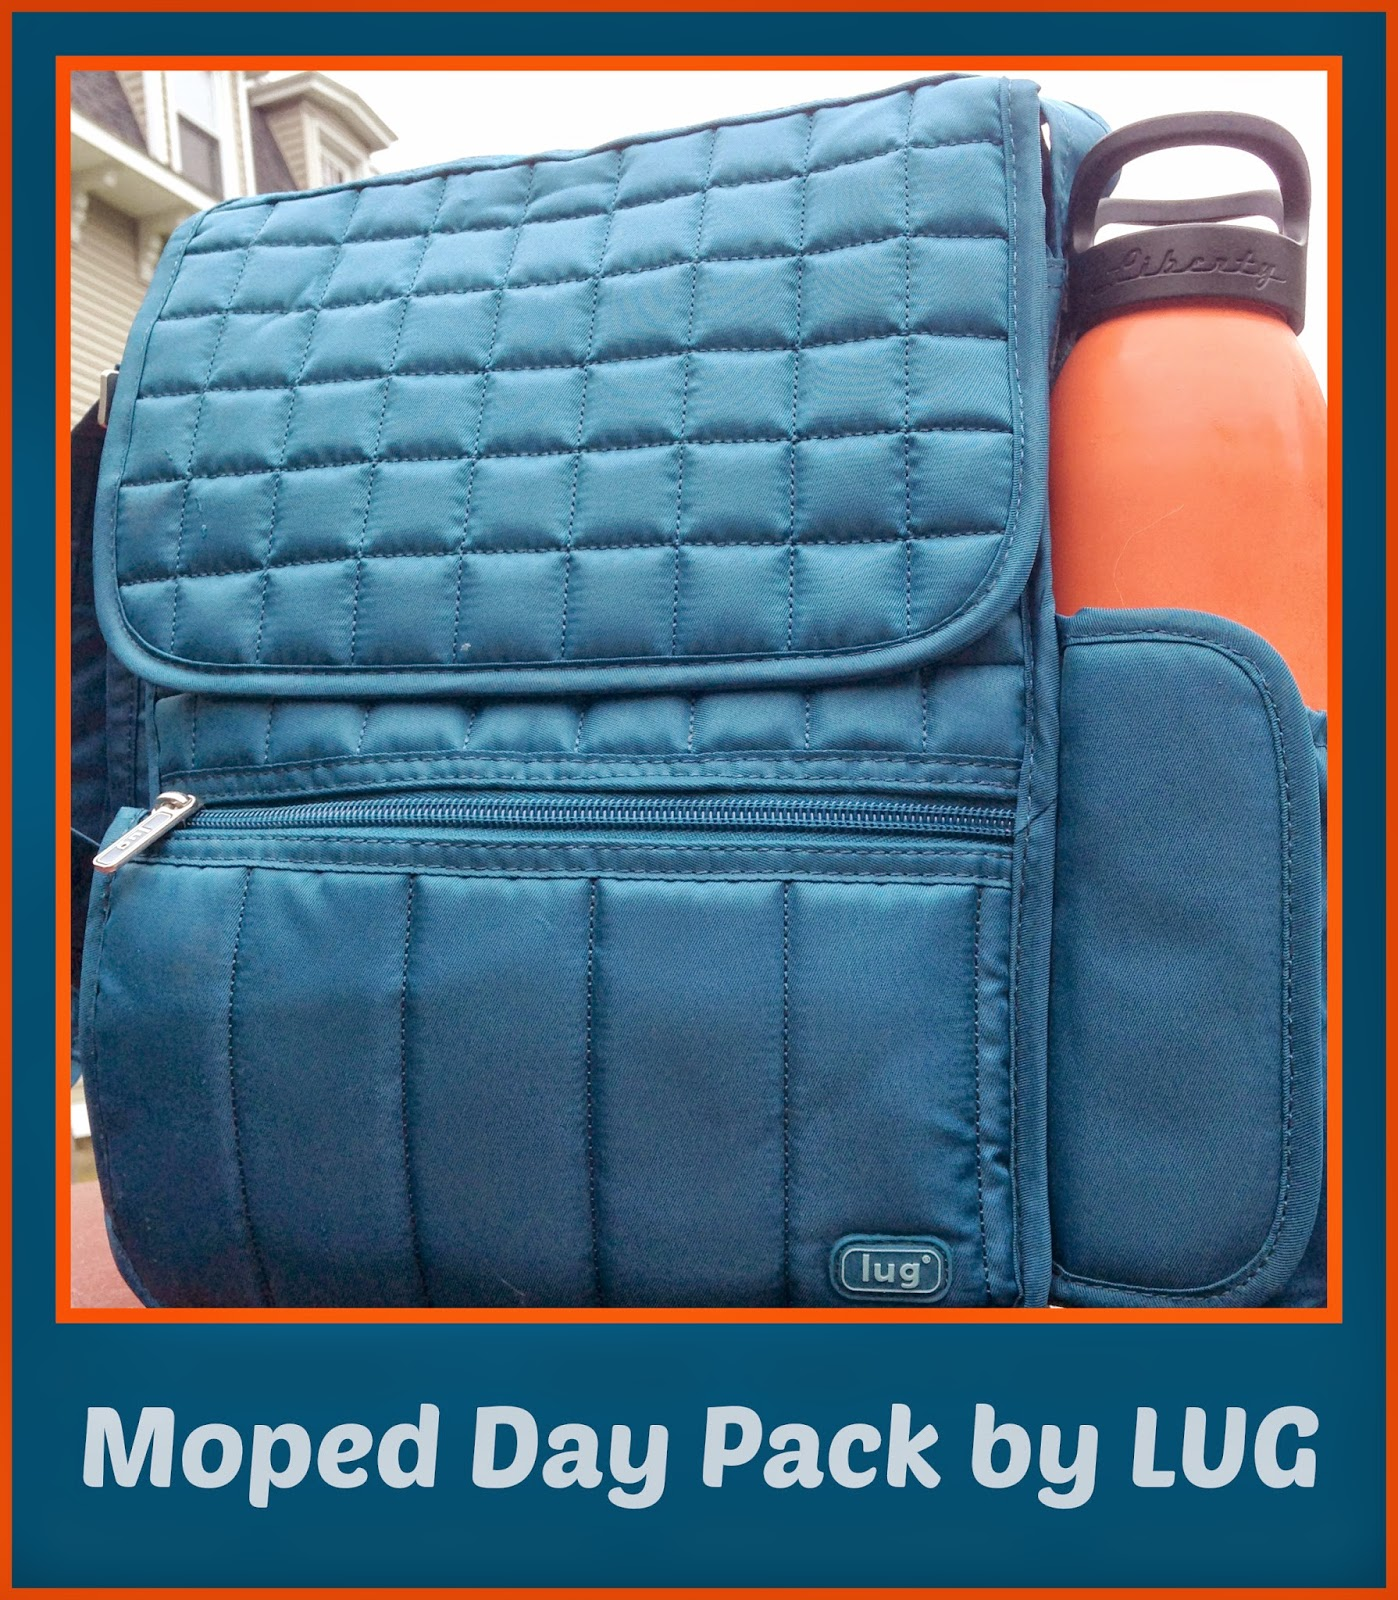 Moped Day Pack Giveaway